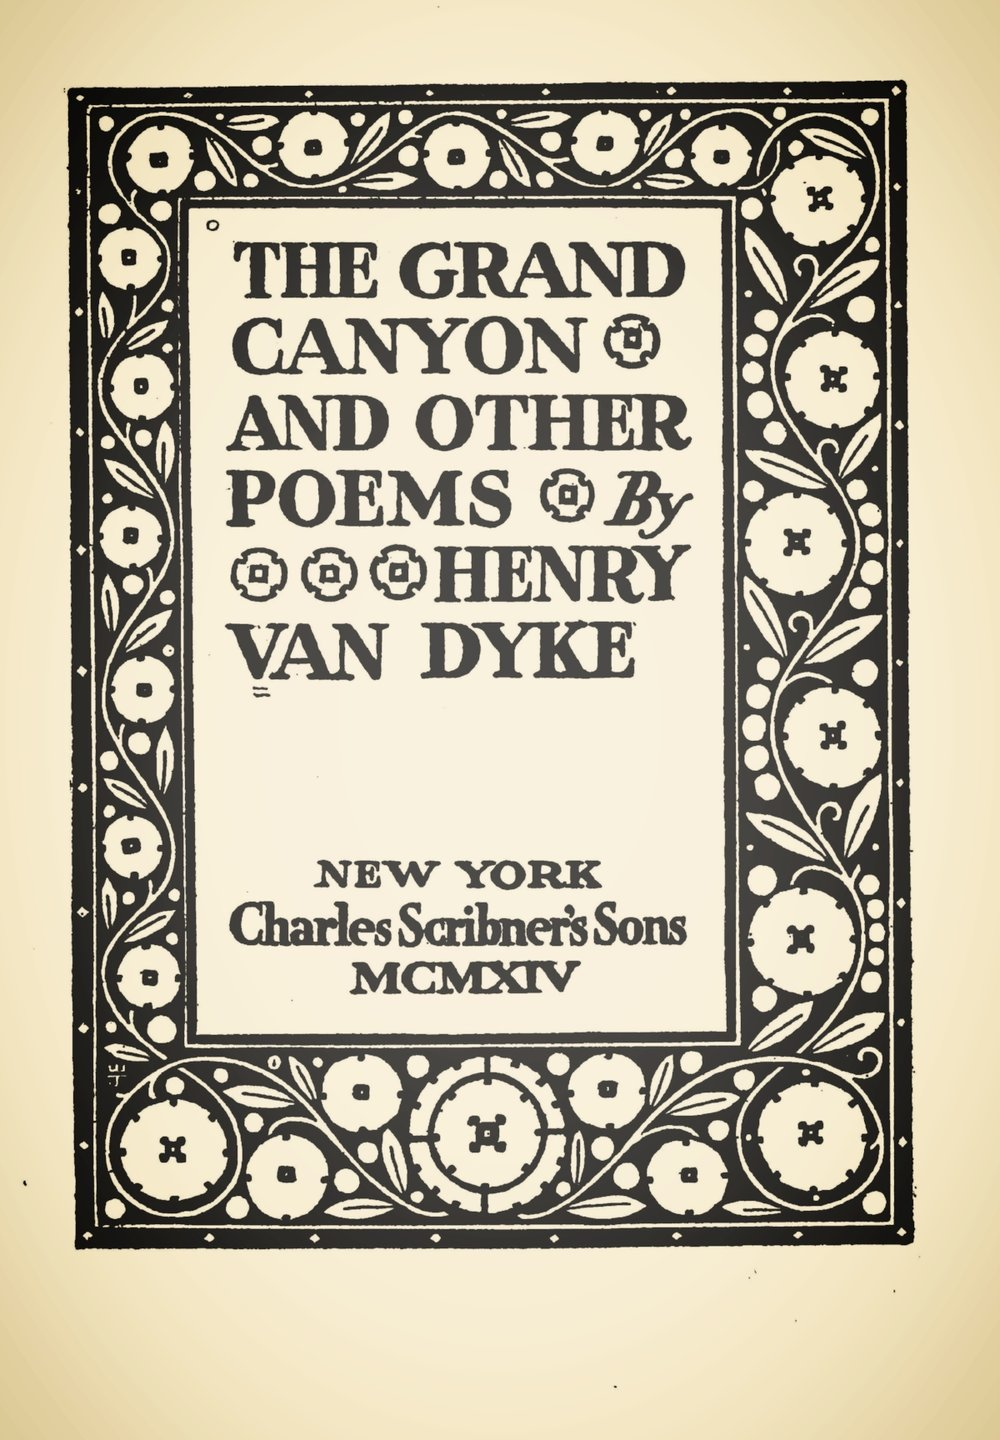 Van Dyke, Jr., Henry Jackson, The Grand Canyon Title Page.jpg